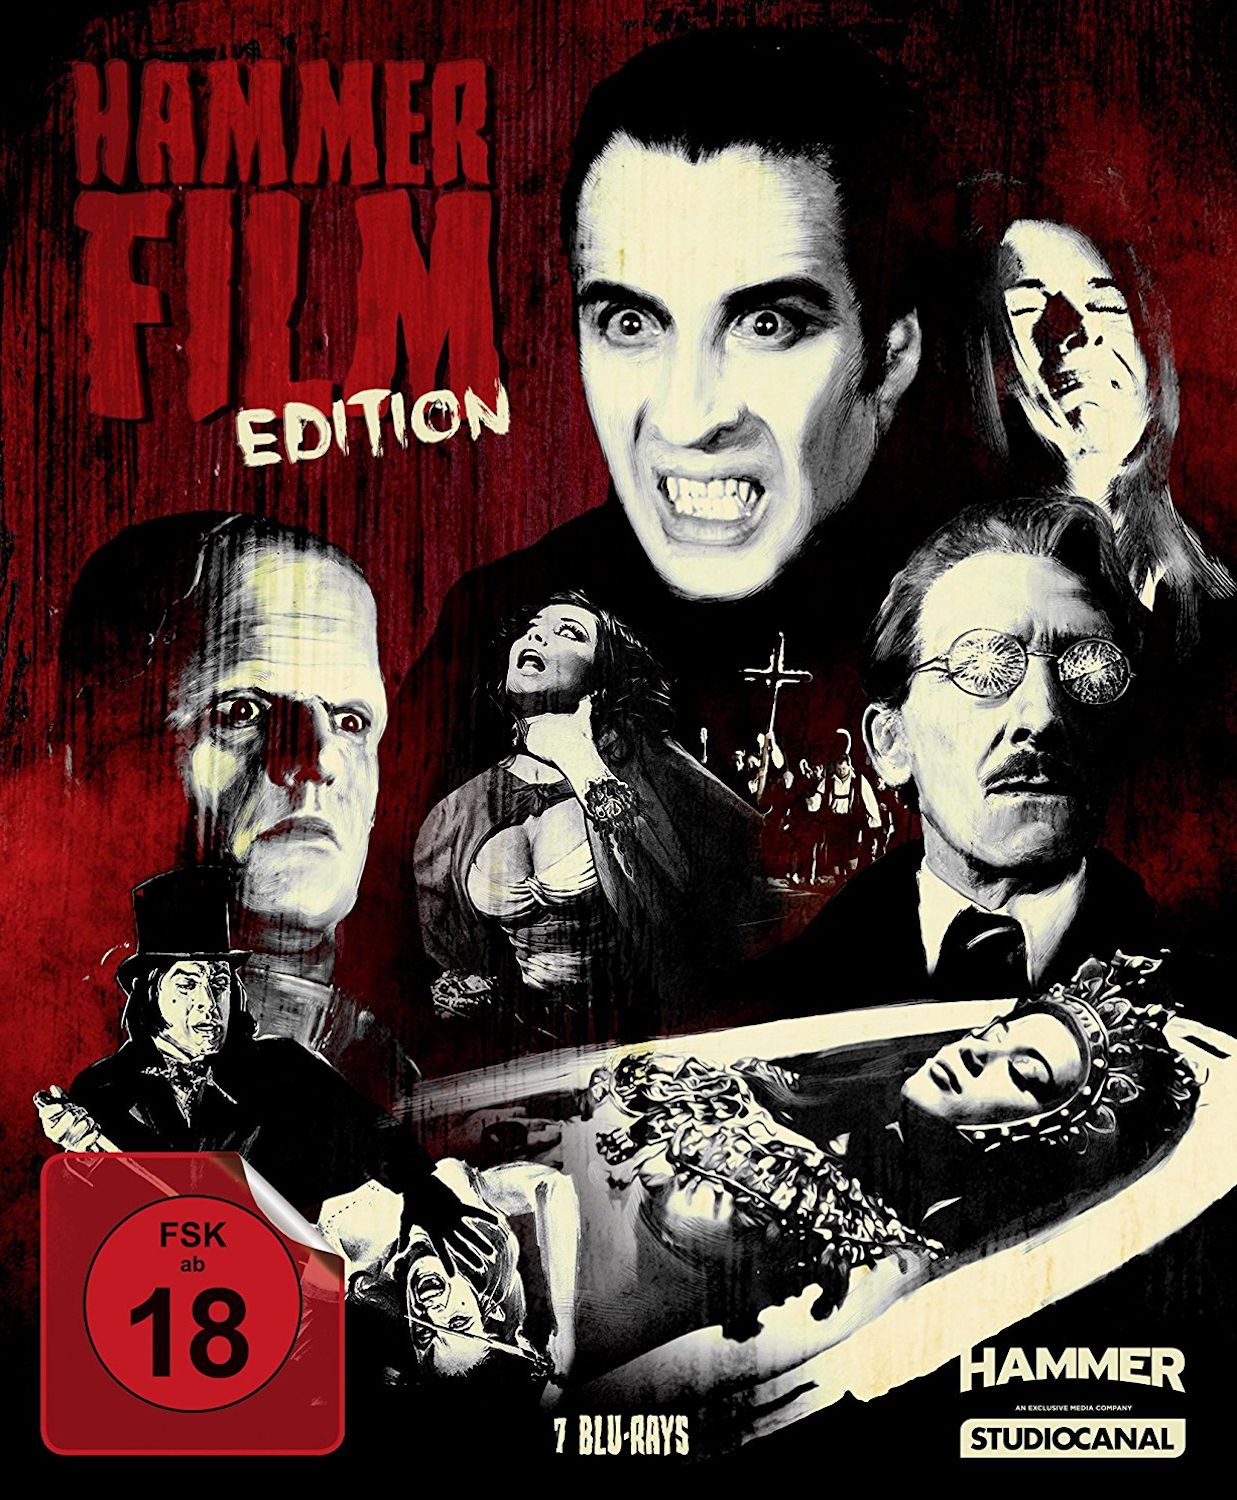 hammer film collection blu-ray set germany (studio canal